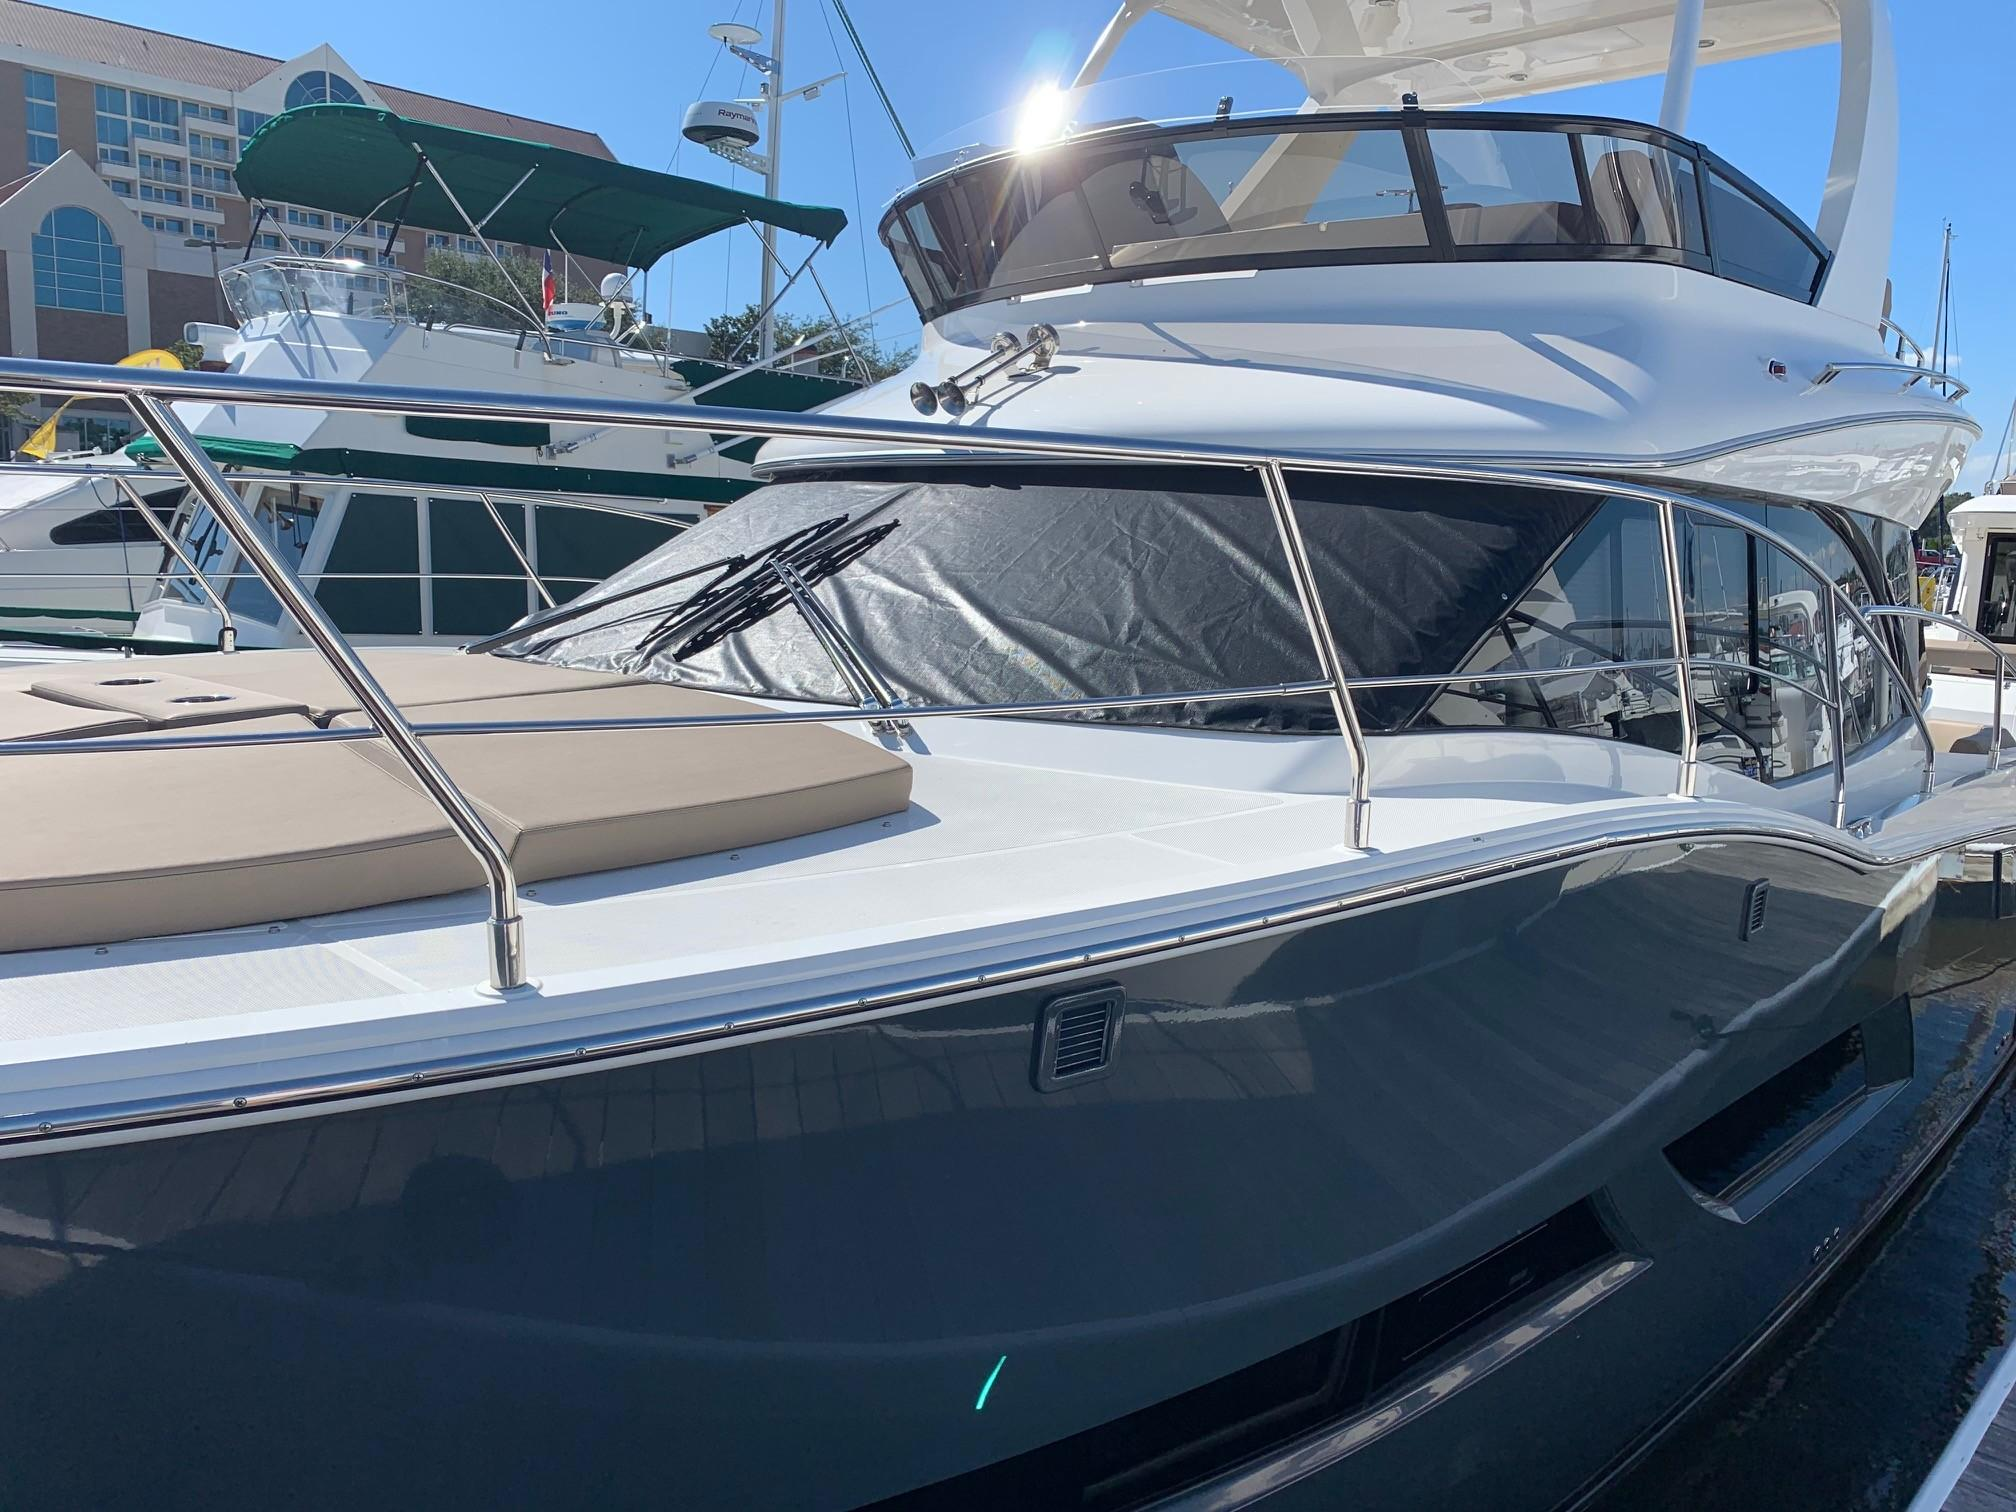 Little Yacht Sales – Home of Little Yacht Sales